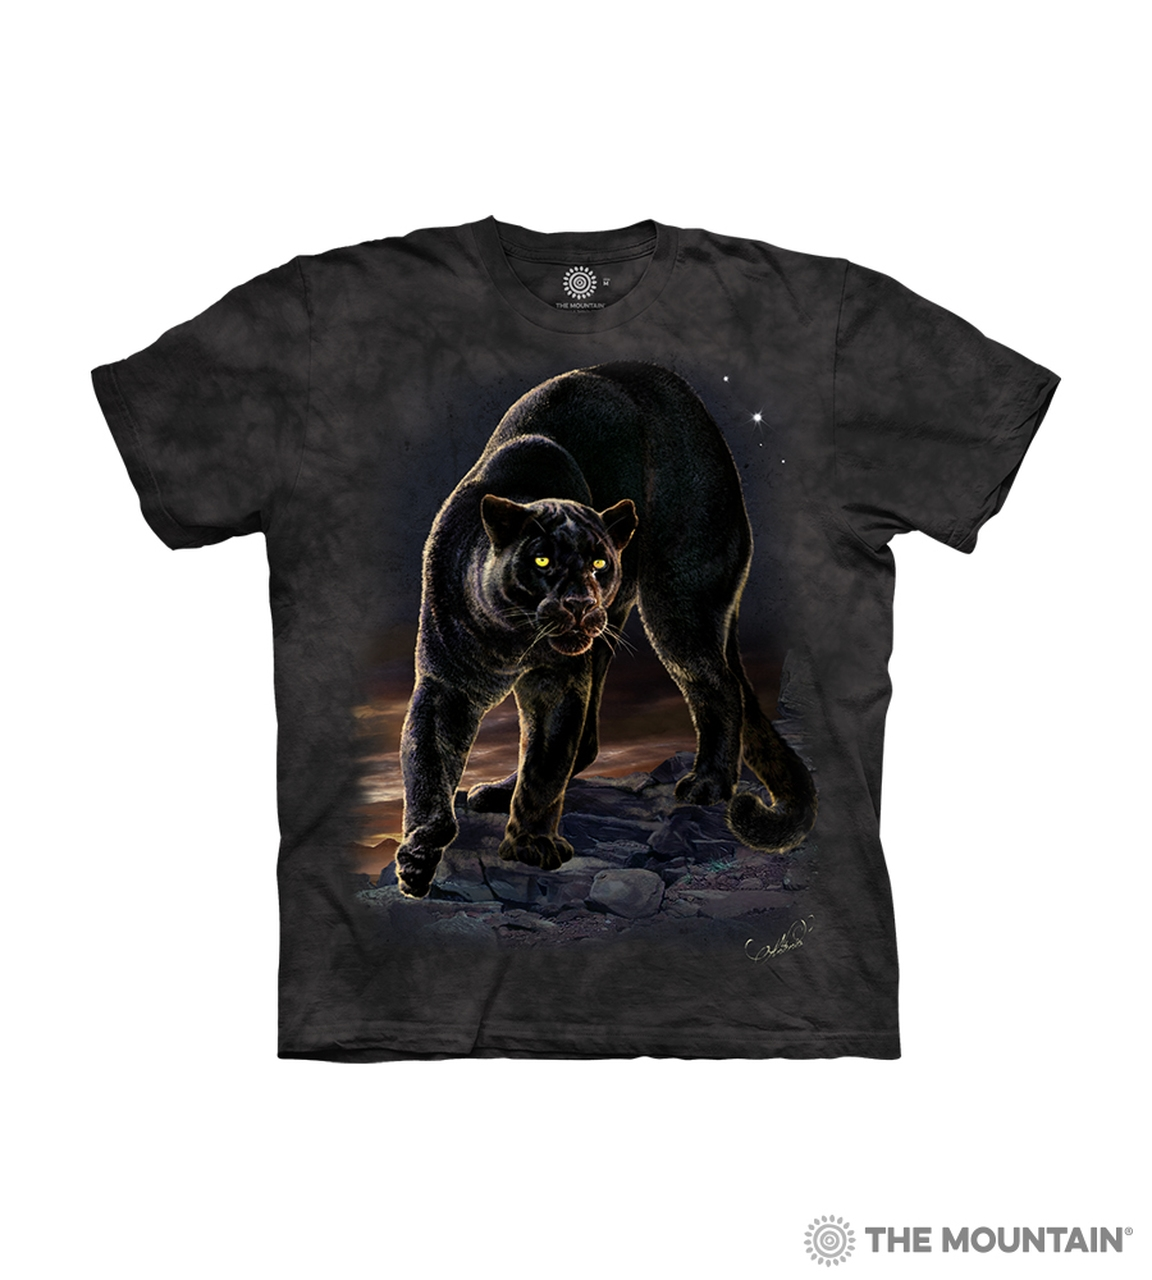 Black Panther - 15-6277 - Youth Tshirt